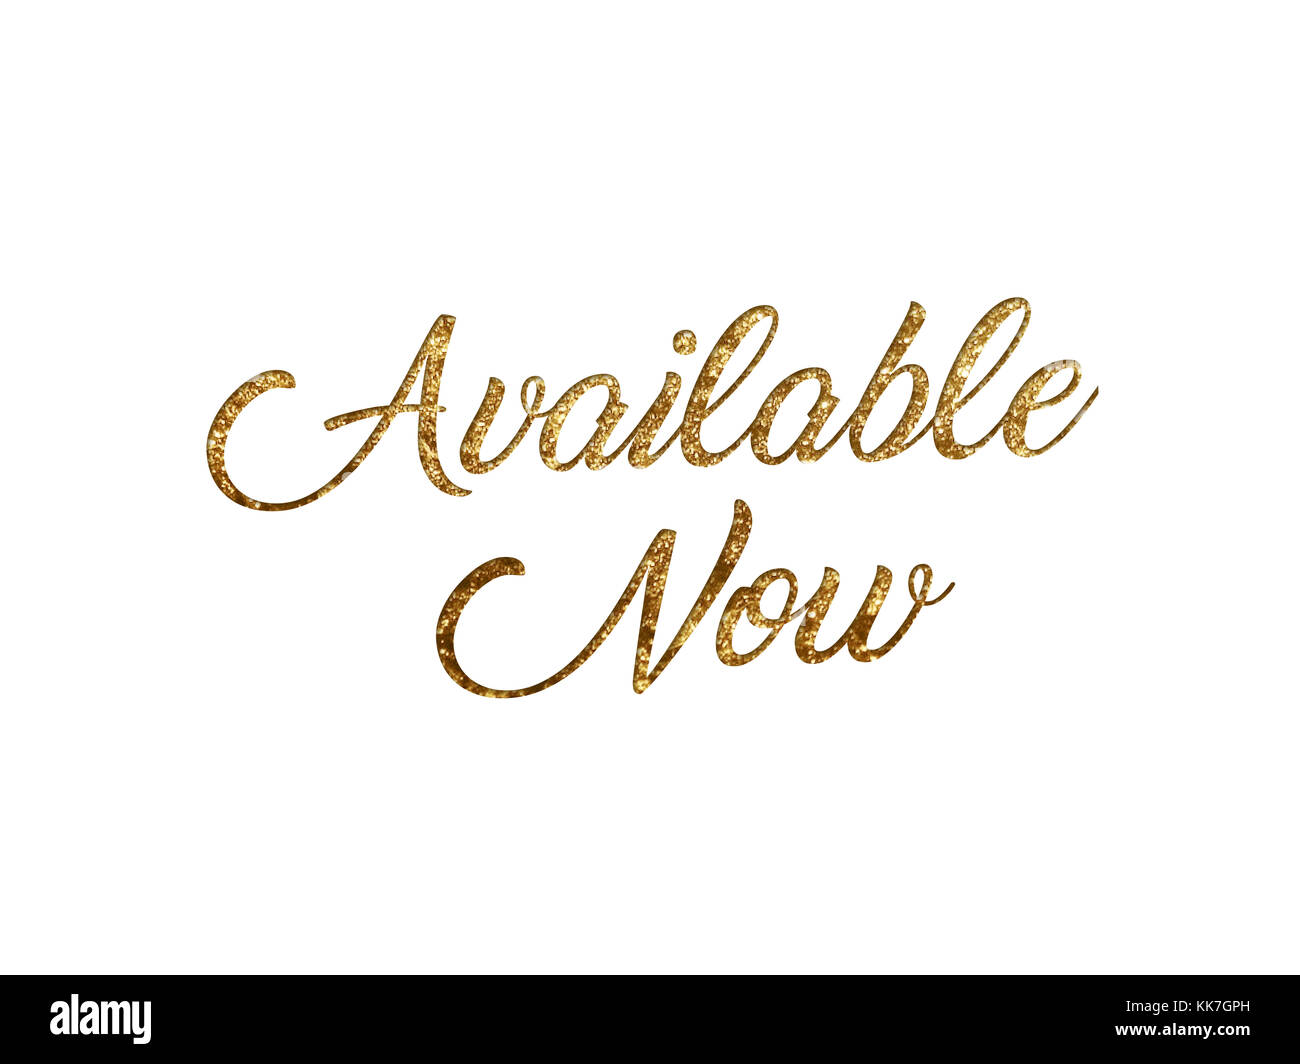 The Golden glitter isolated hand writing word AVAILABLE NOW on black background - Stock Image